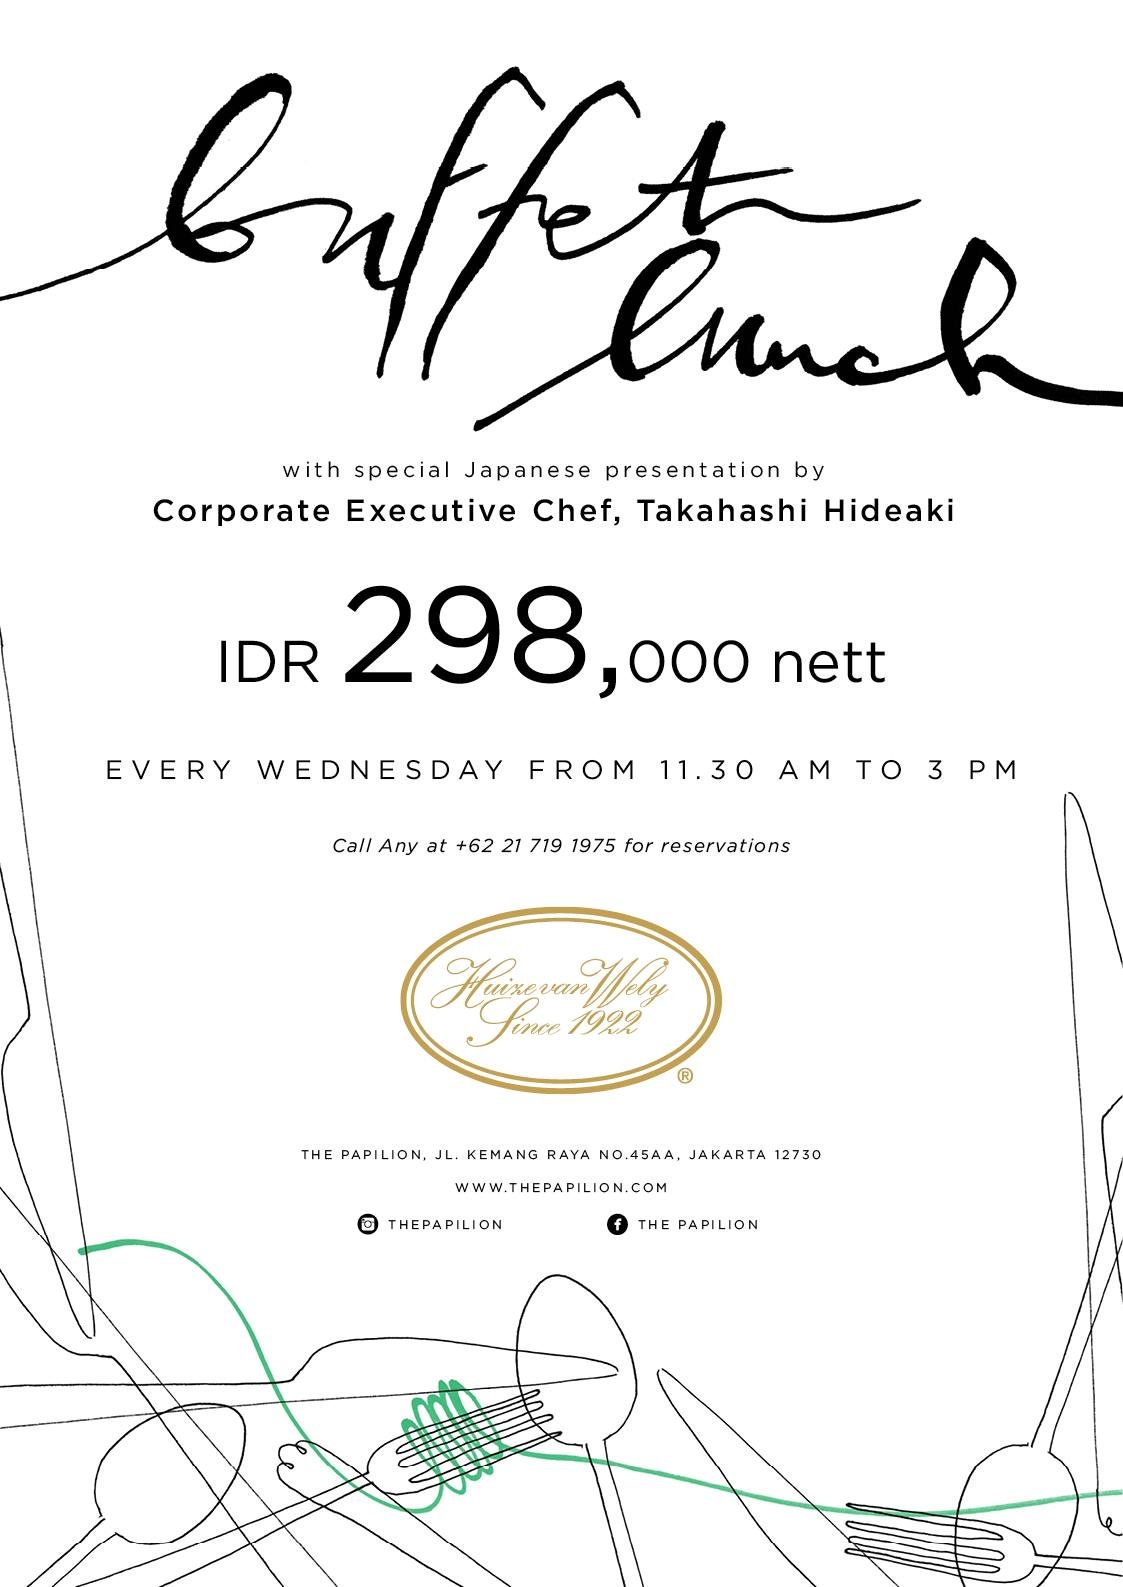 Lunch-deals-venuerific-blog-huize-van-wely-kemang-poster